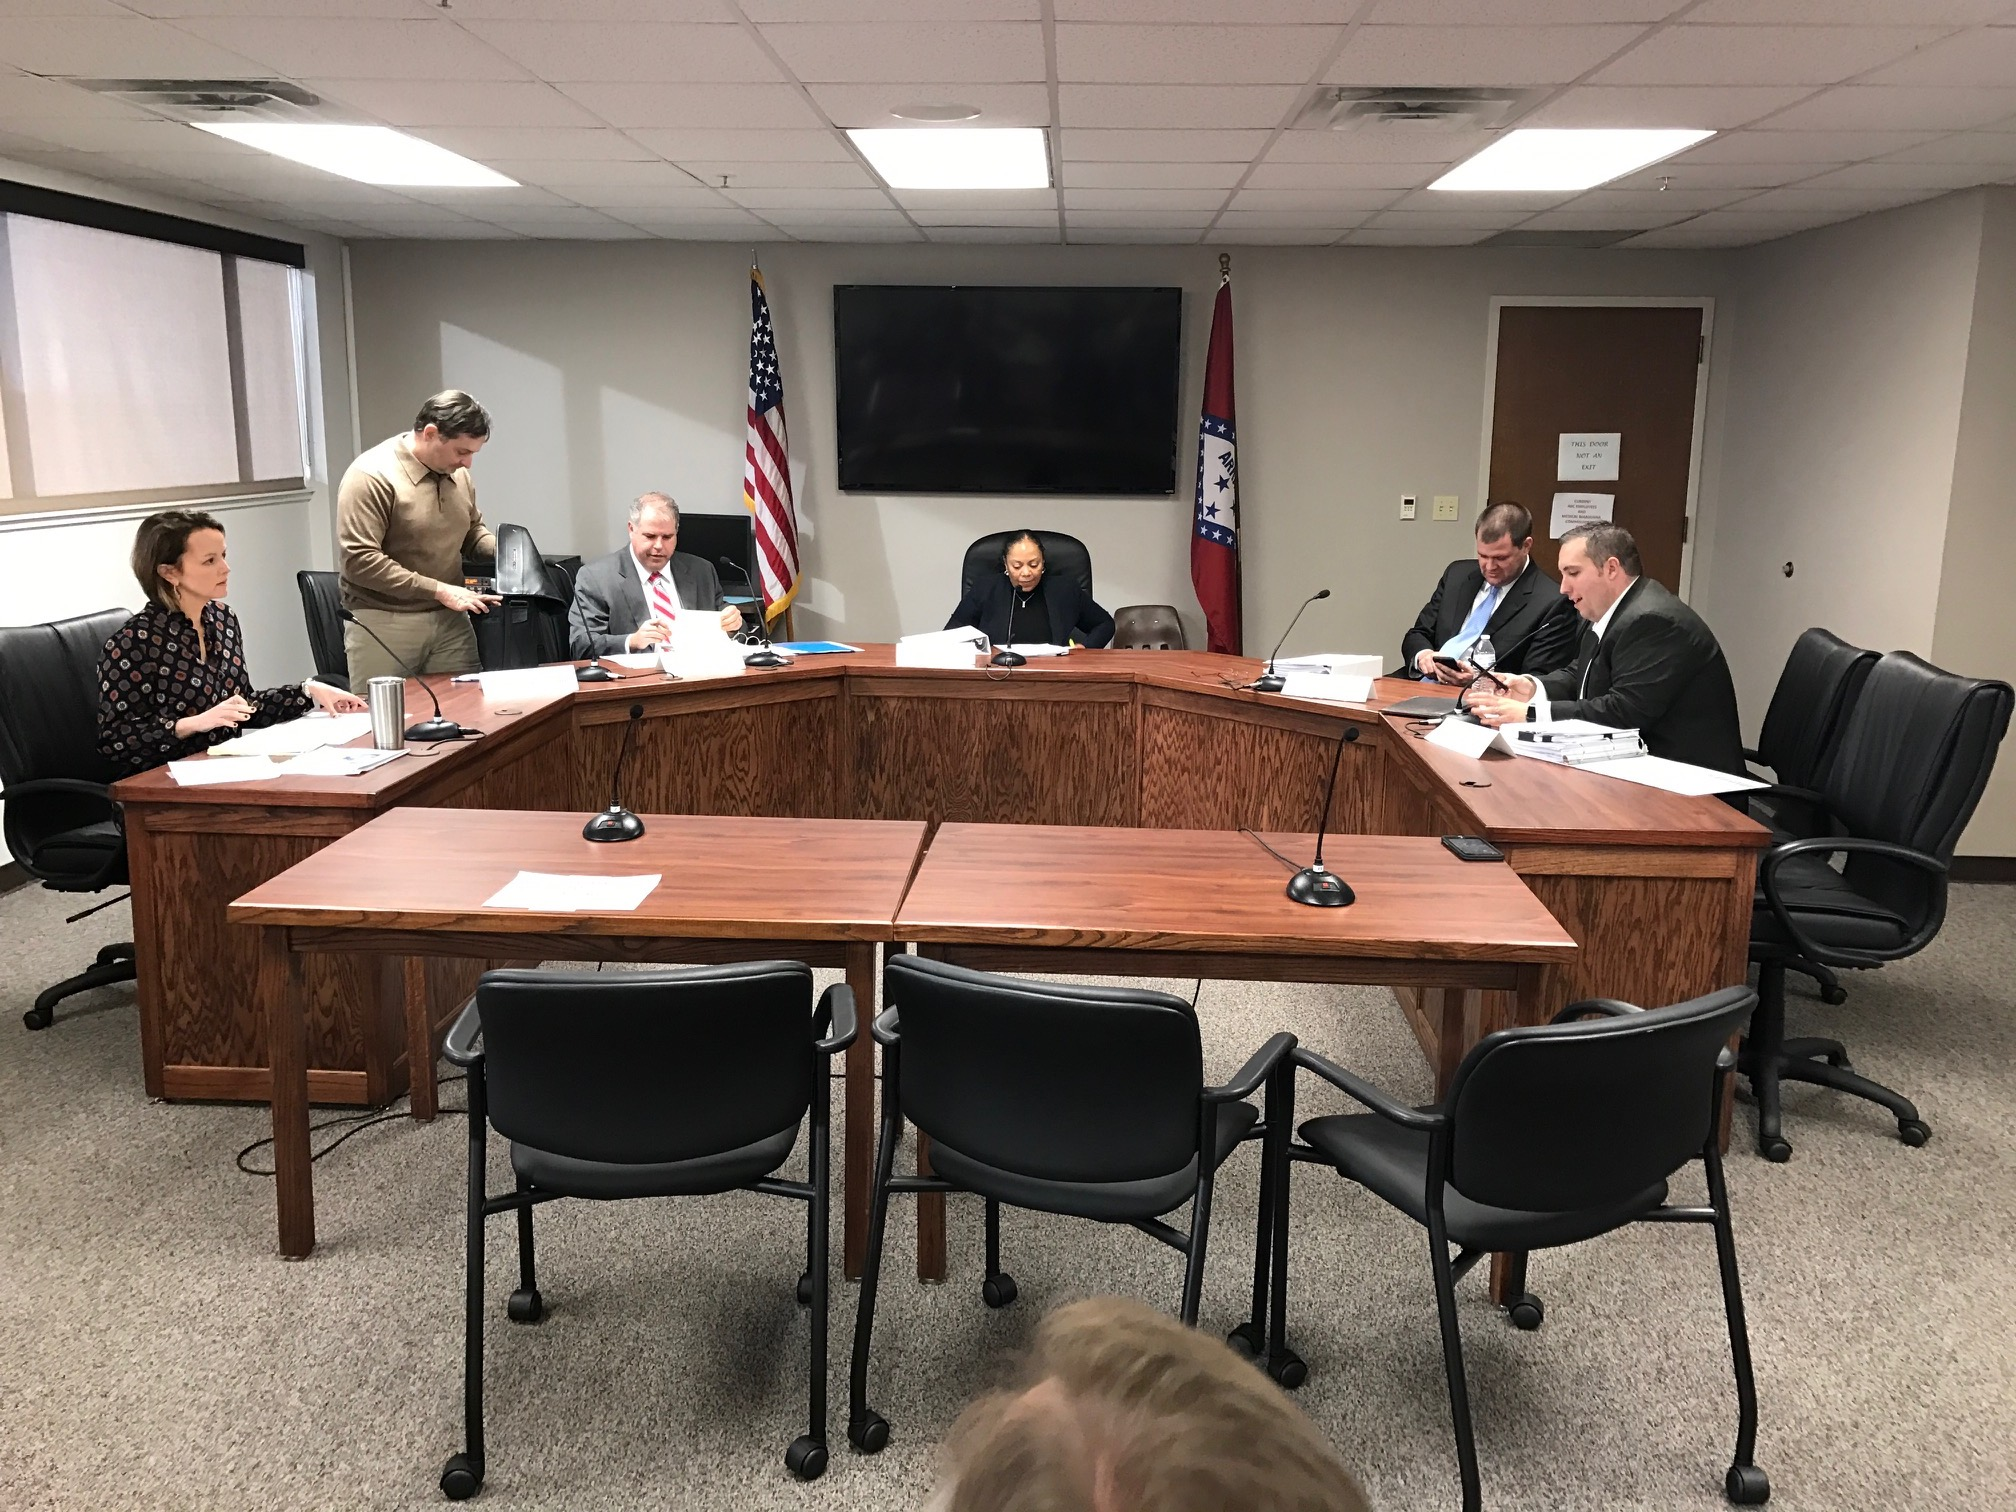 Updates from the Feb. 7th Arkansas Medical Marijuana Commission Meeting